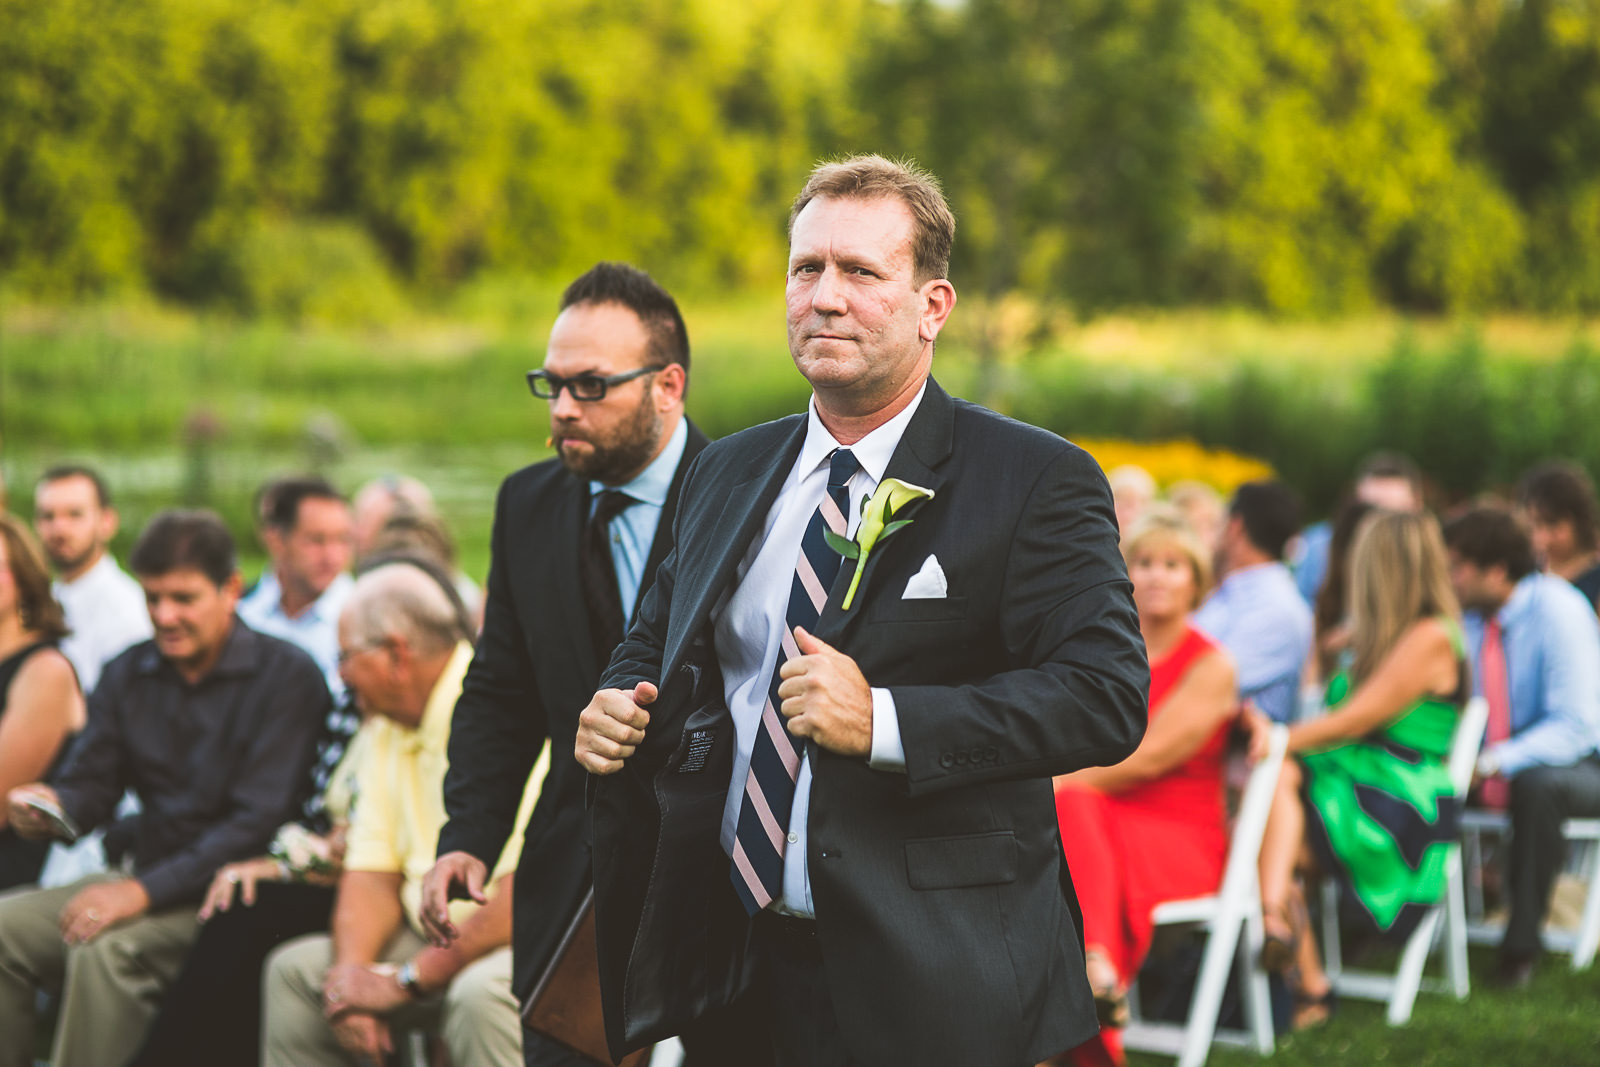 21 groom walking down isle - Karen + Scott // Fishermens Inn Wedding Photographer Elburn Illinois